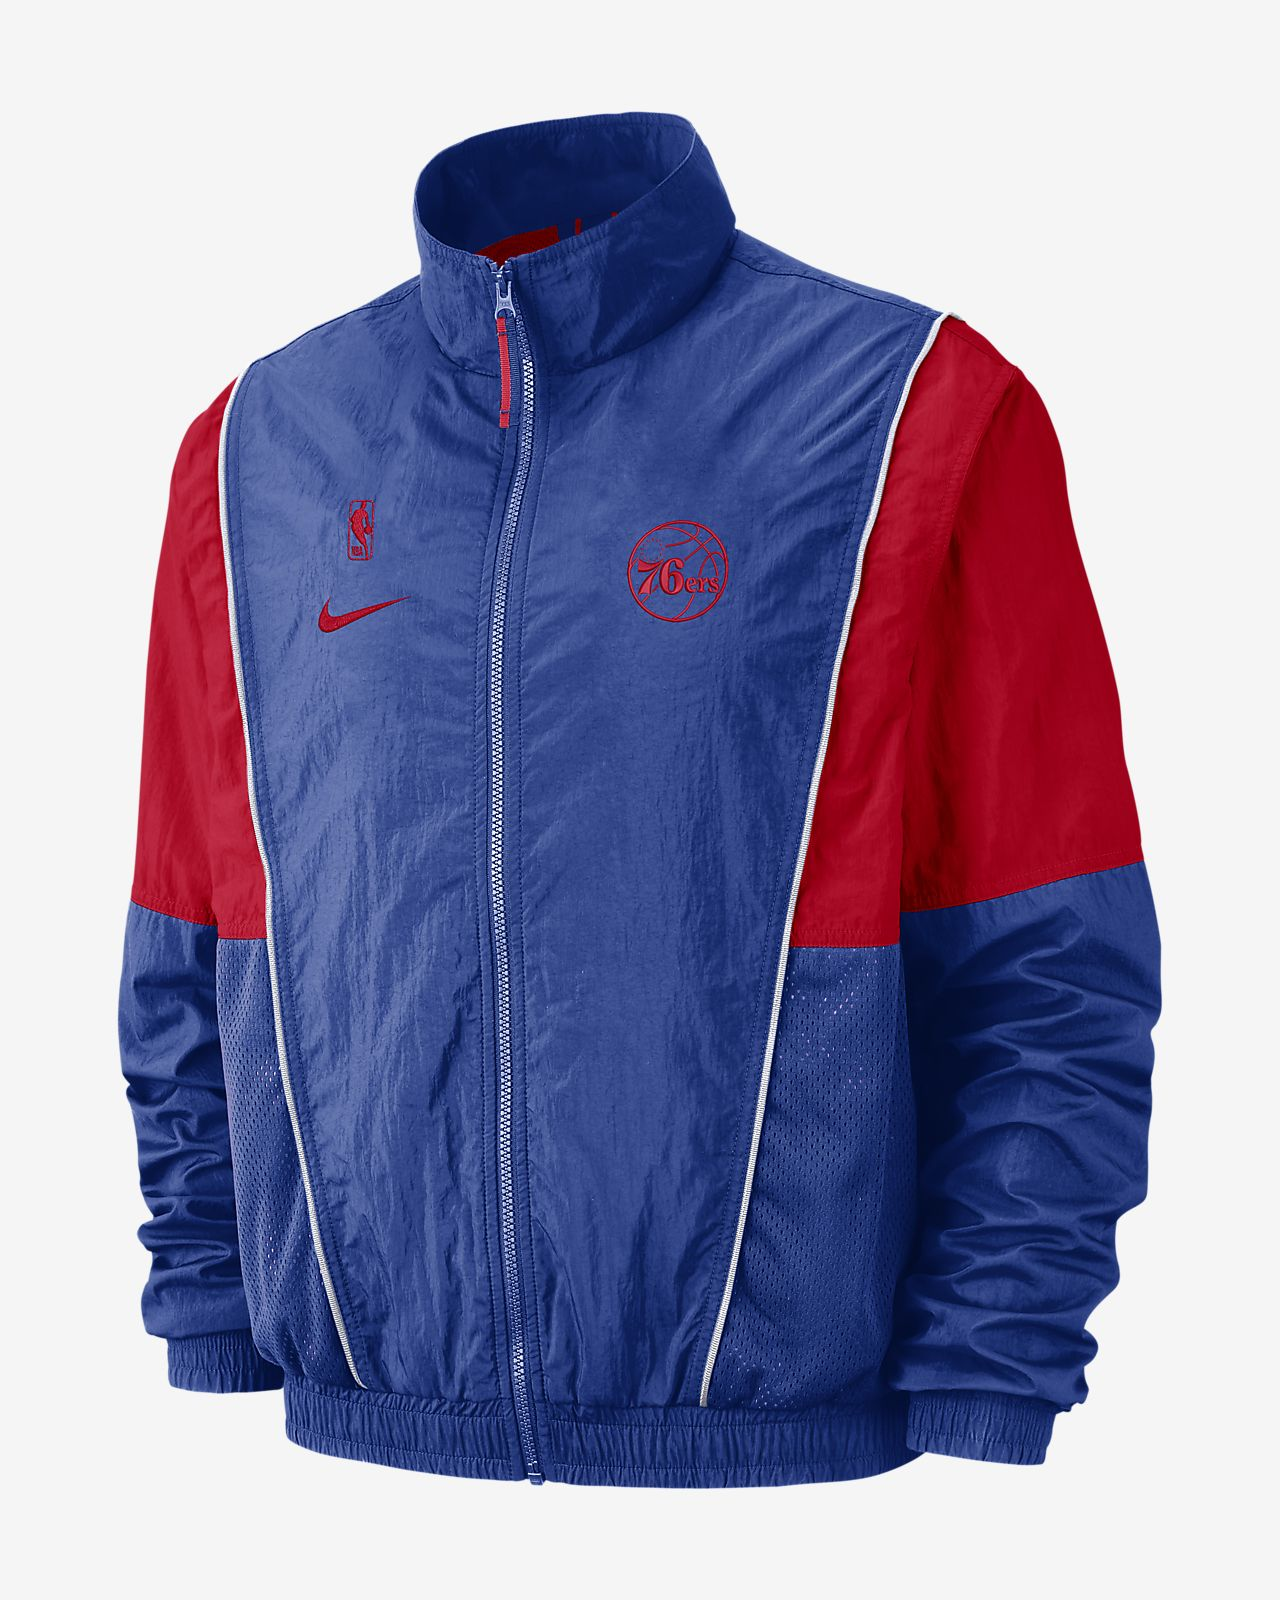 a3cd5913f18 Philadelphia 76ers Nike Men's NBA Tracksuit Jacket. Nike.com